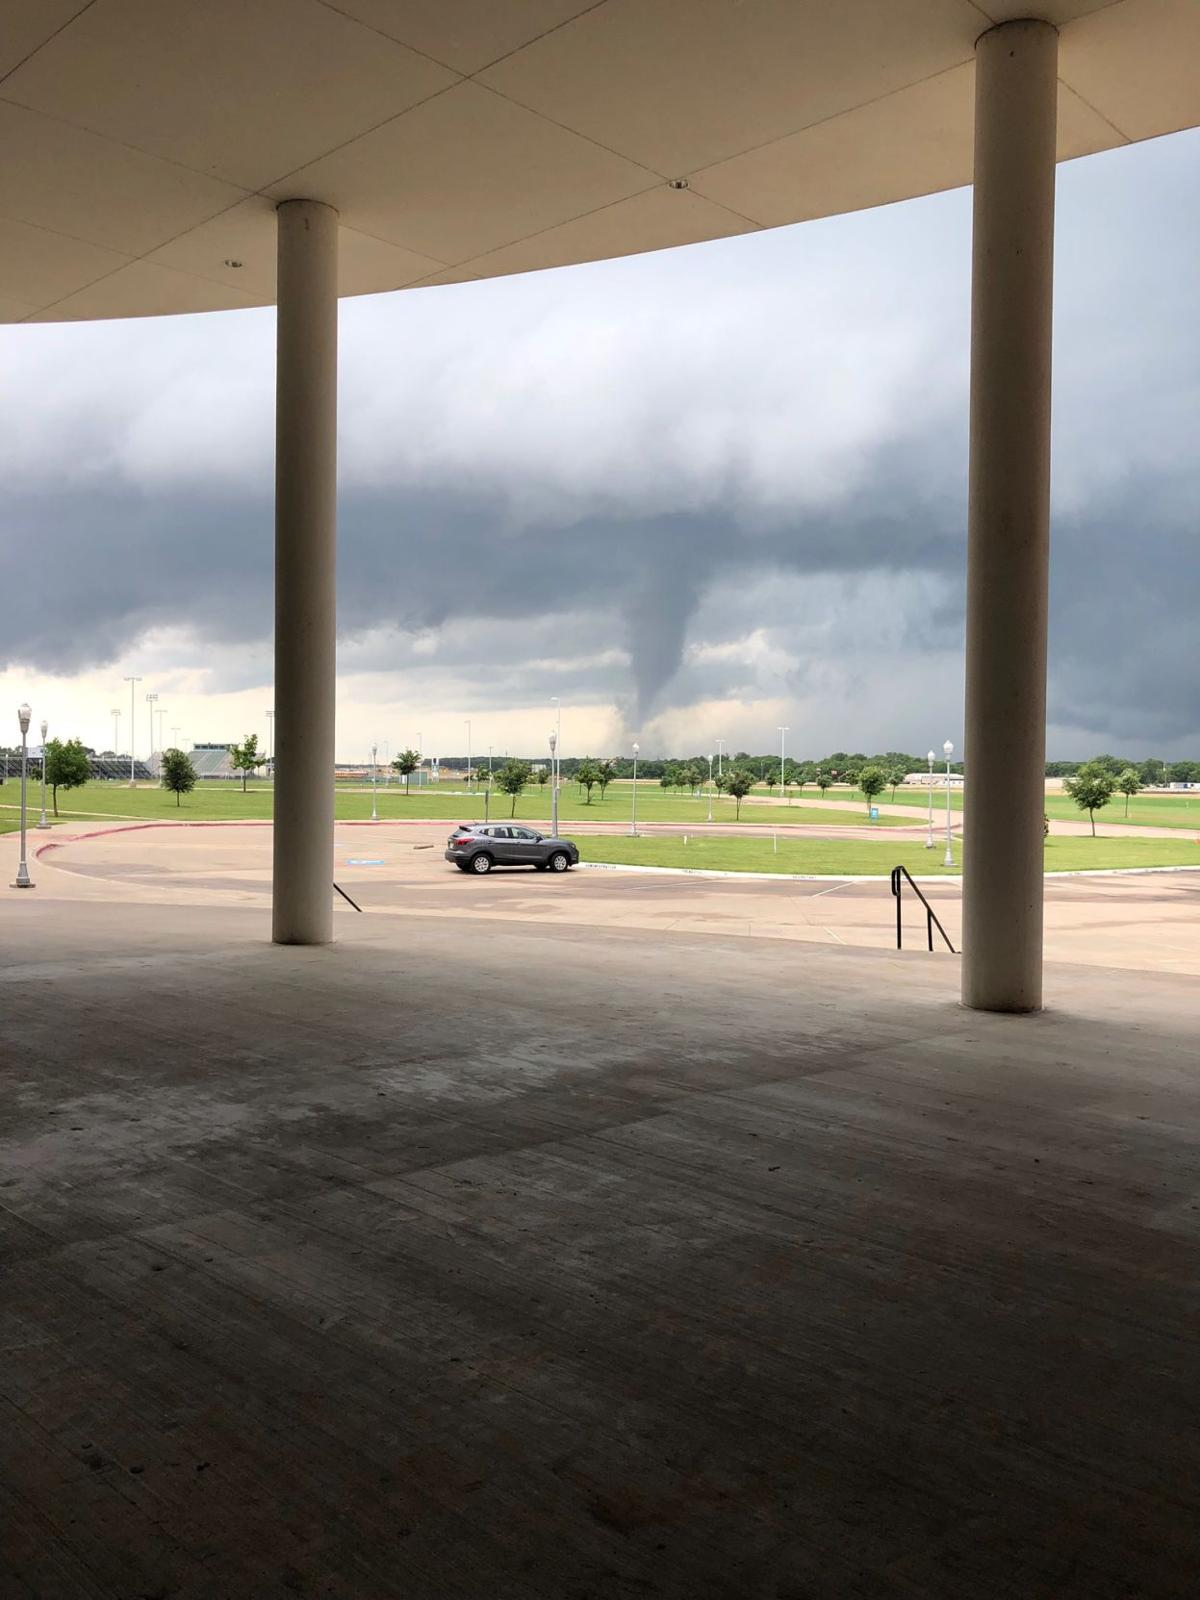 Second tornado photo